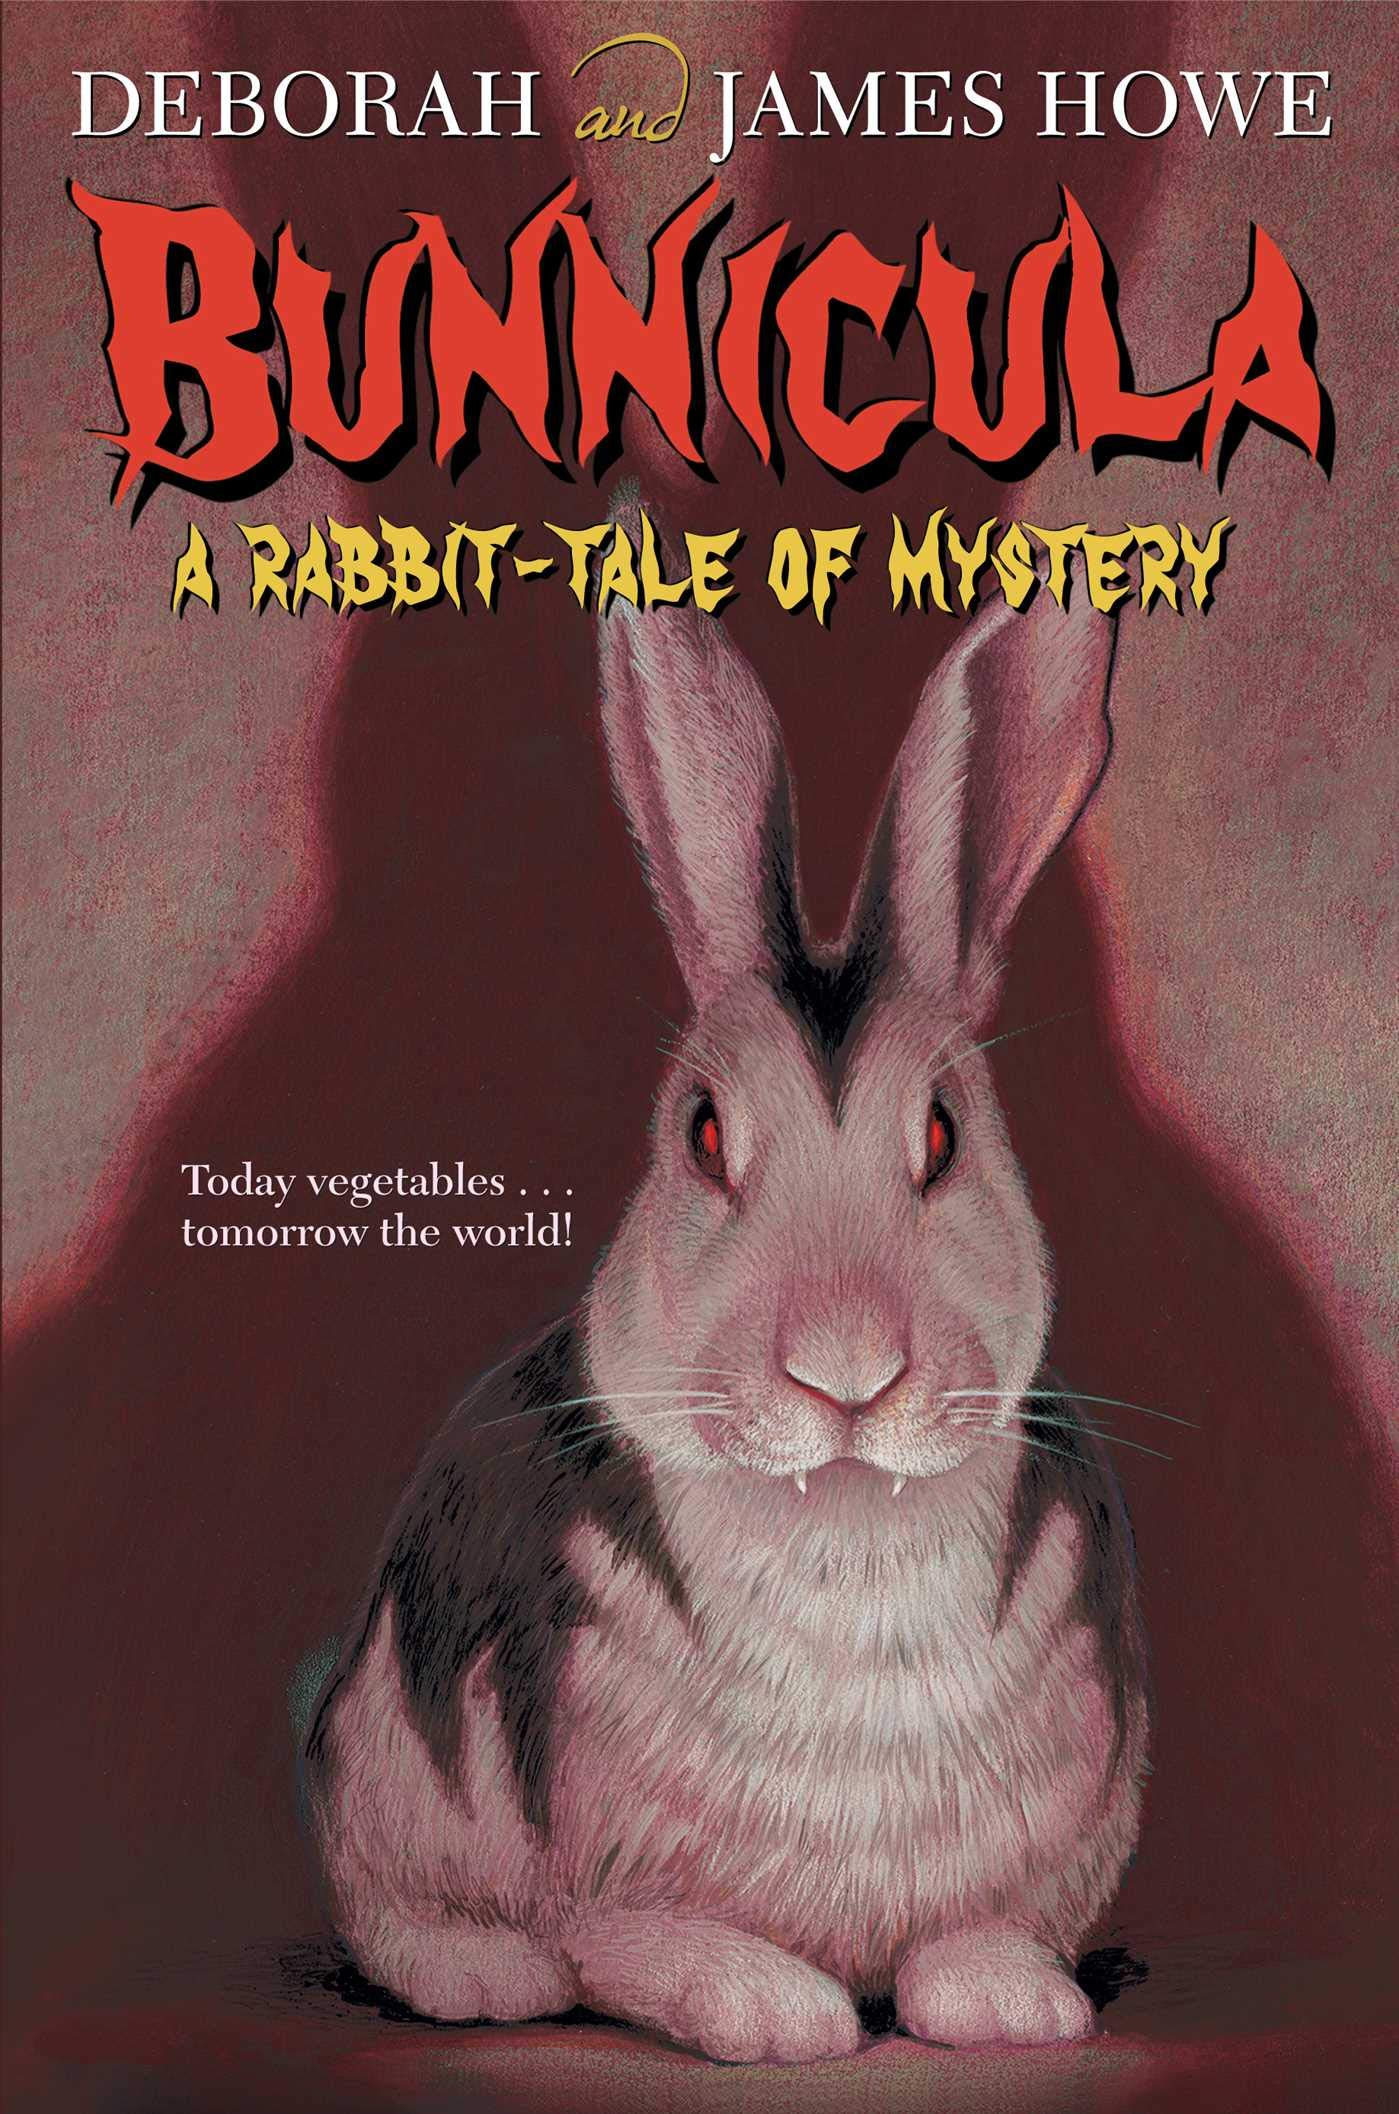 Buy Bunnicula A Rabbit Tale Of Mystery Bunnicula And Friends Book Online At Low Prices In India Bunnicula A Rabbit Tale Of Mystery Bunnicula And Friends Reviews Ratings Amazon In White tomatoes reading bunnicula